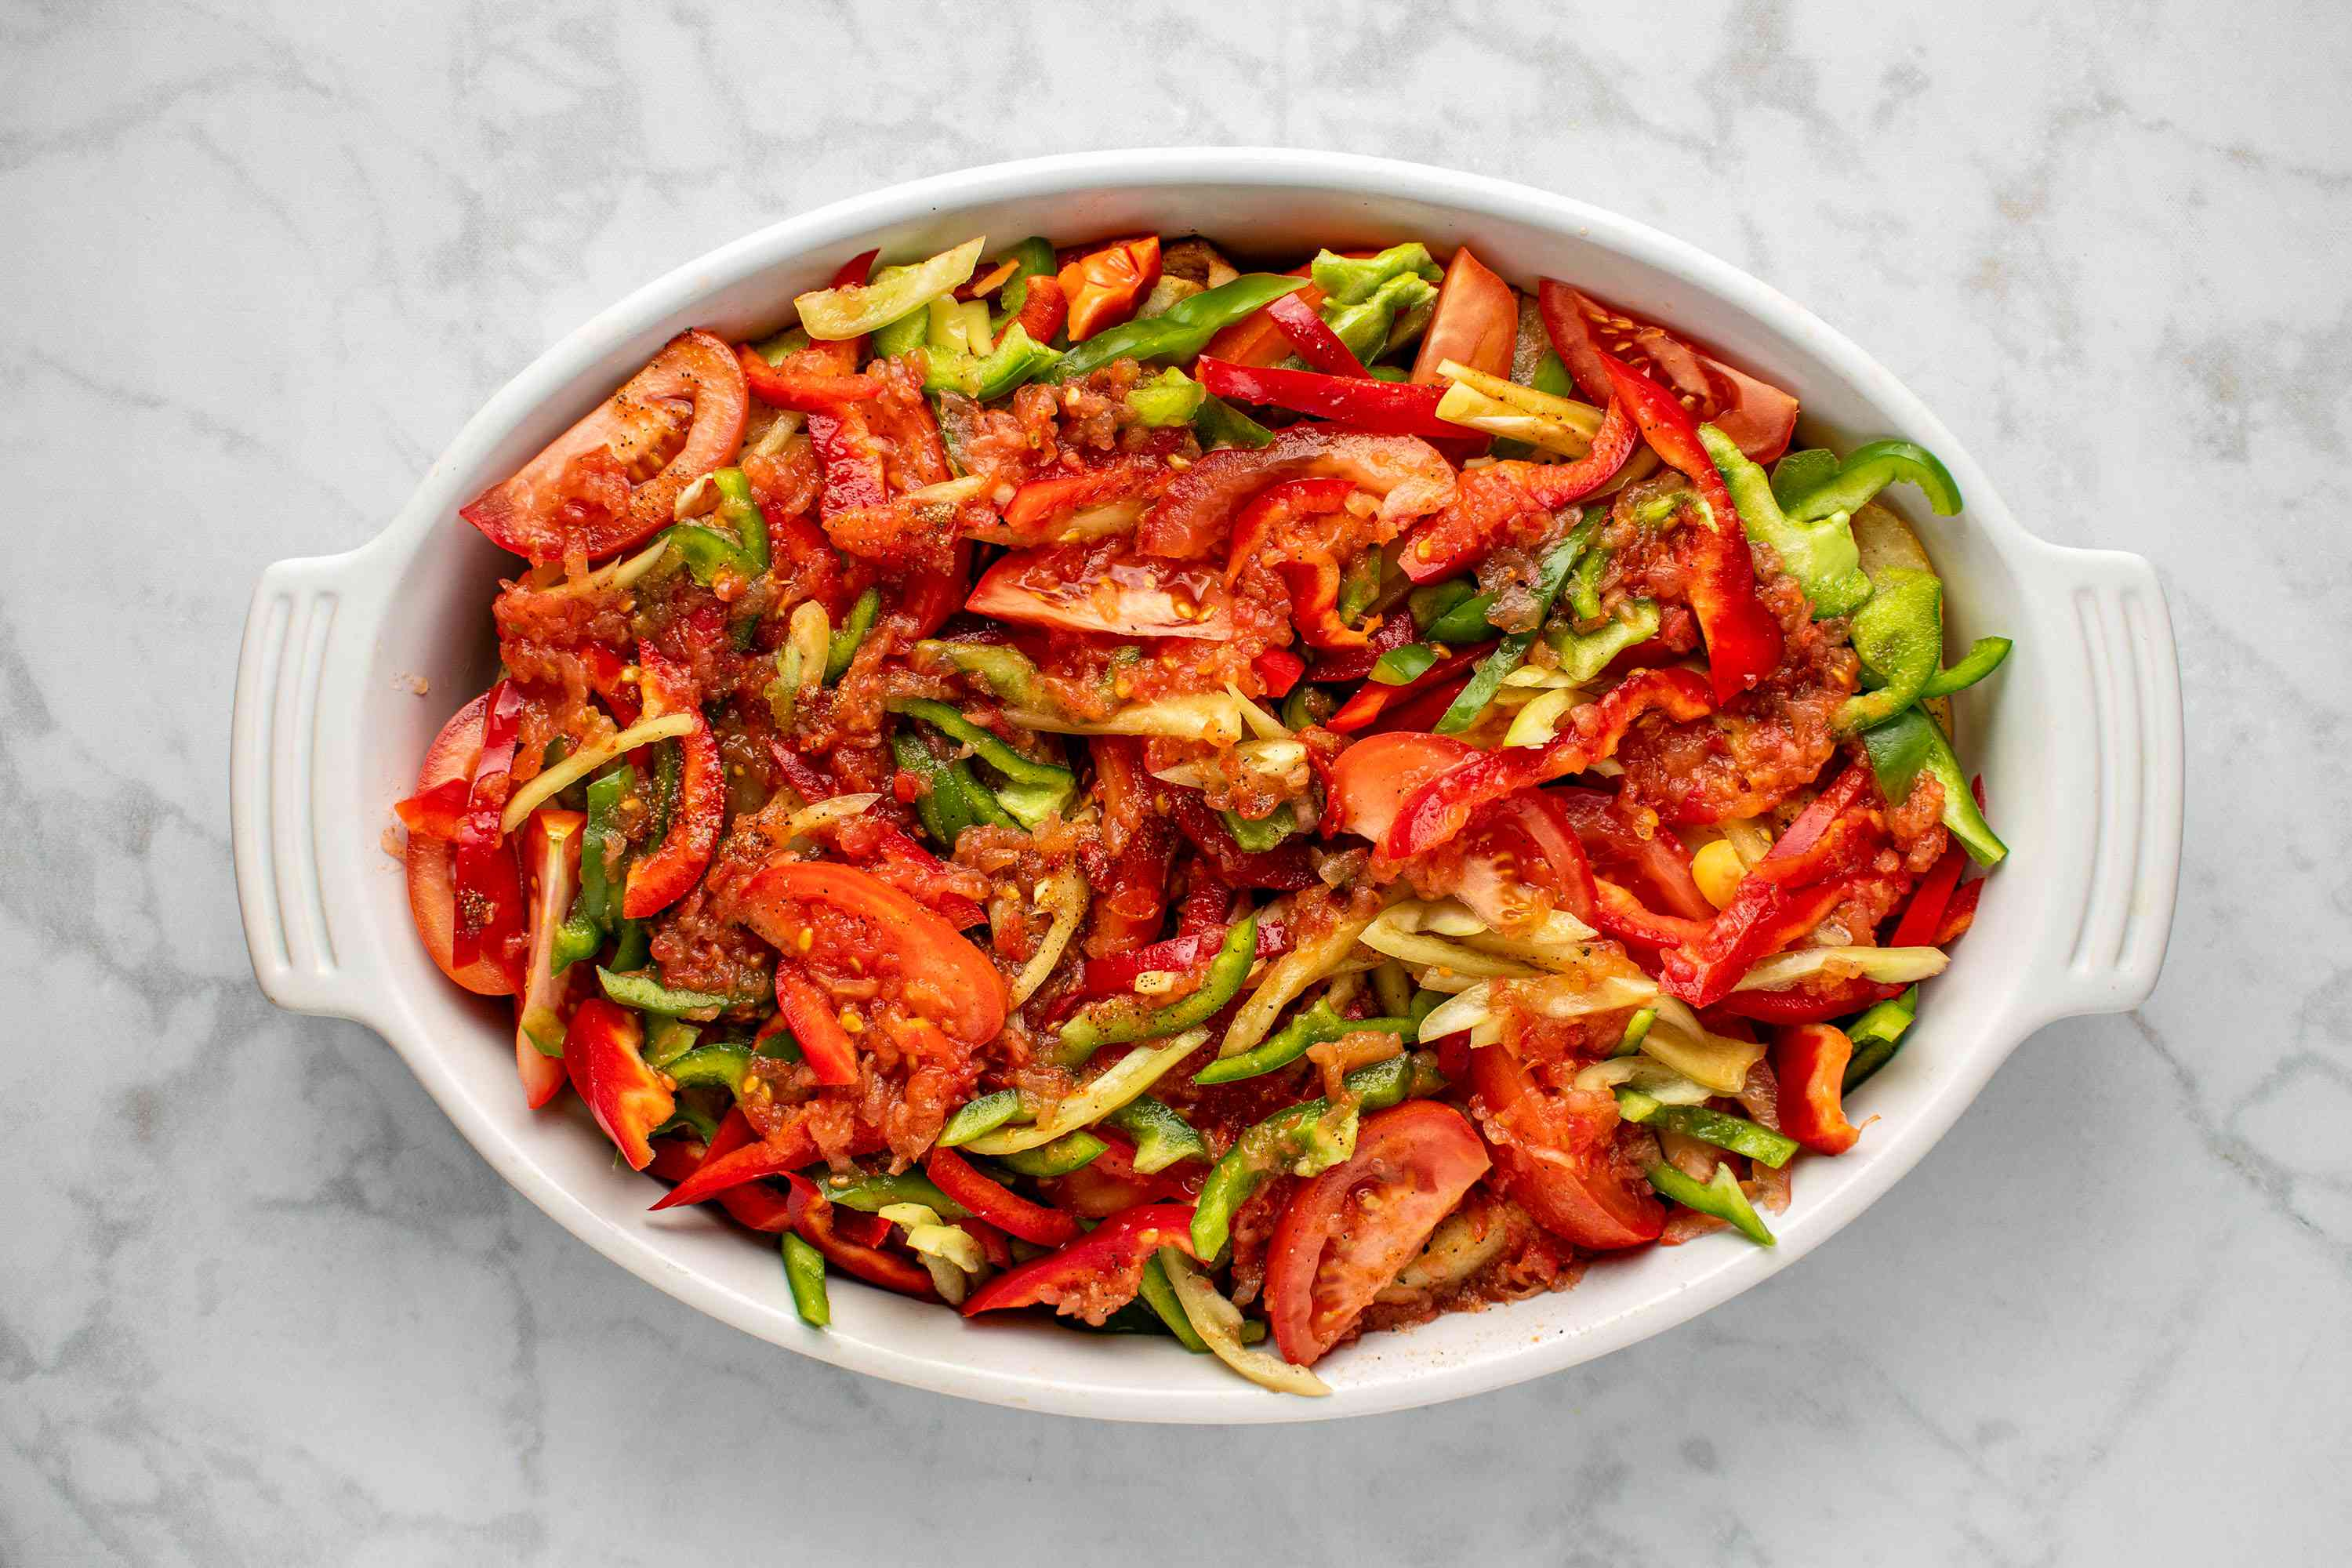 seasoning on top of the vegetables in the baking dish